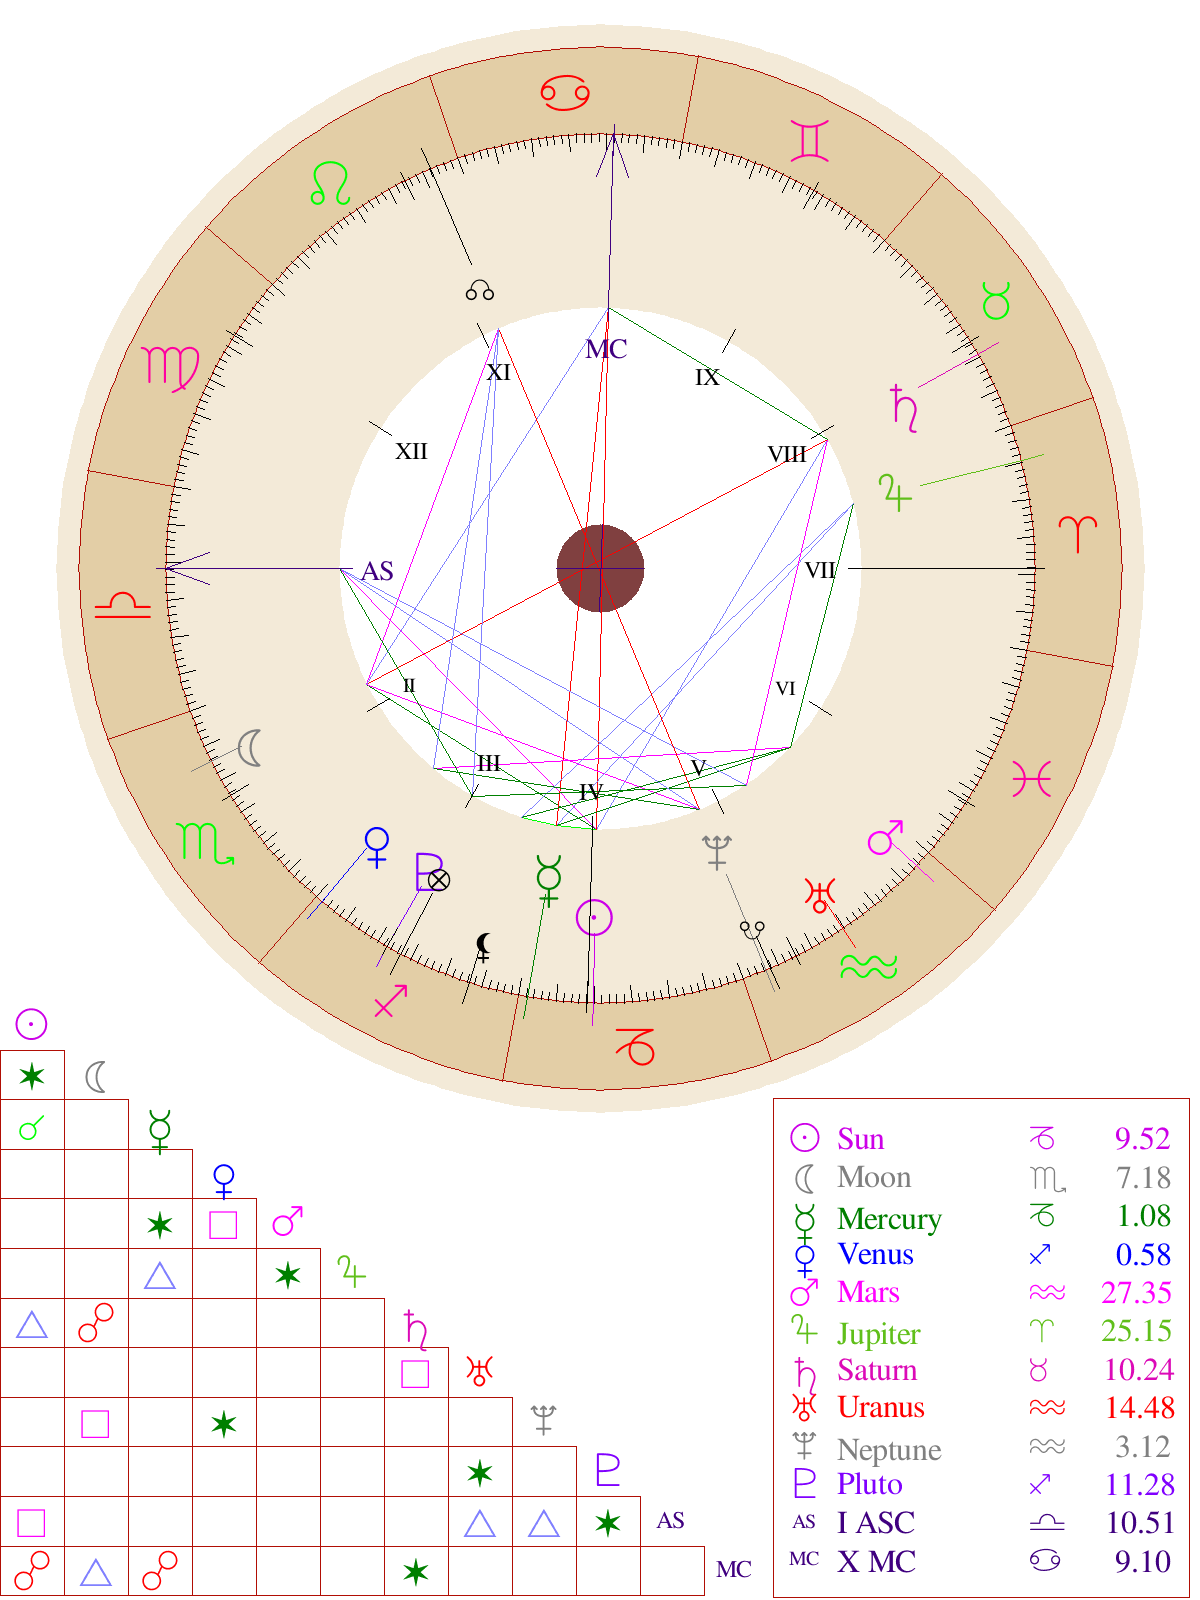 Mars Square North Node Synastry